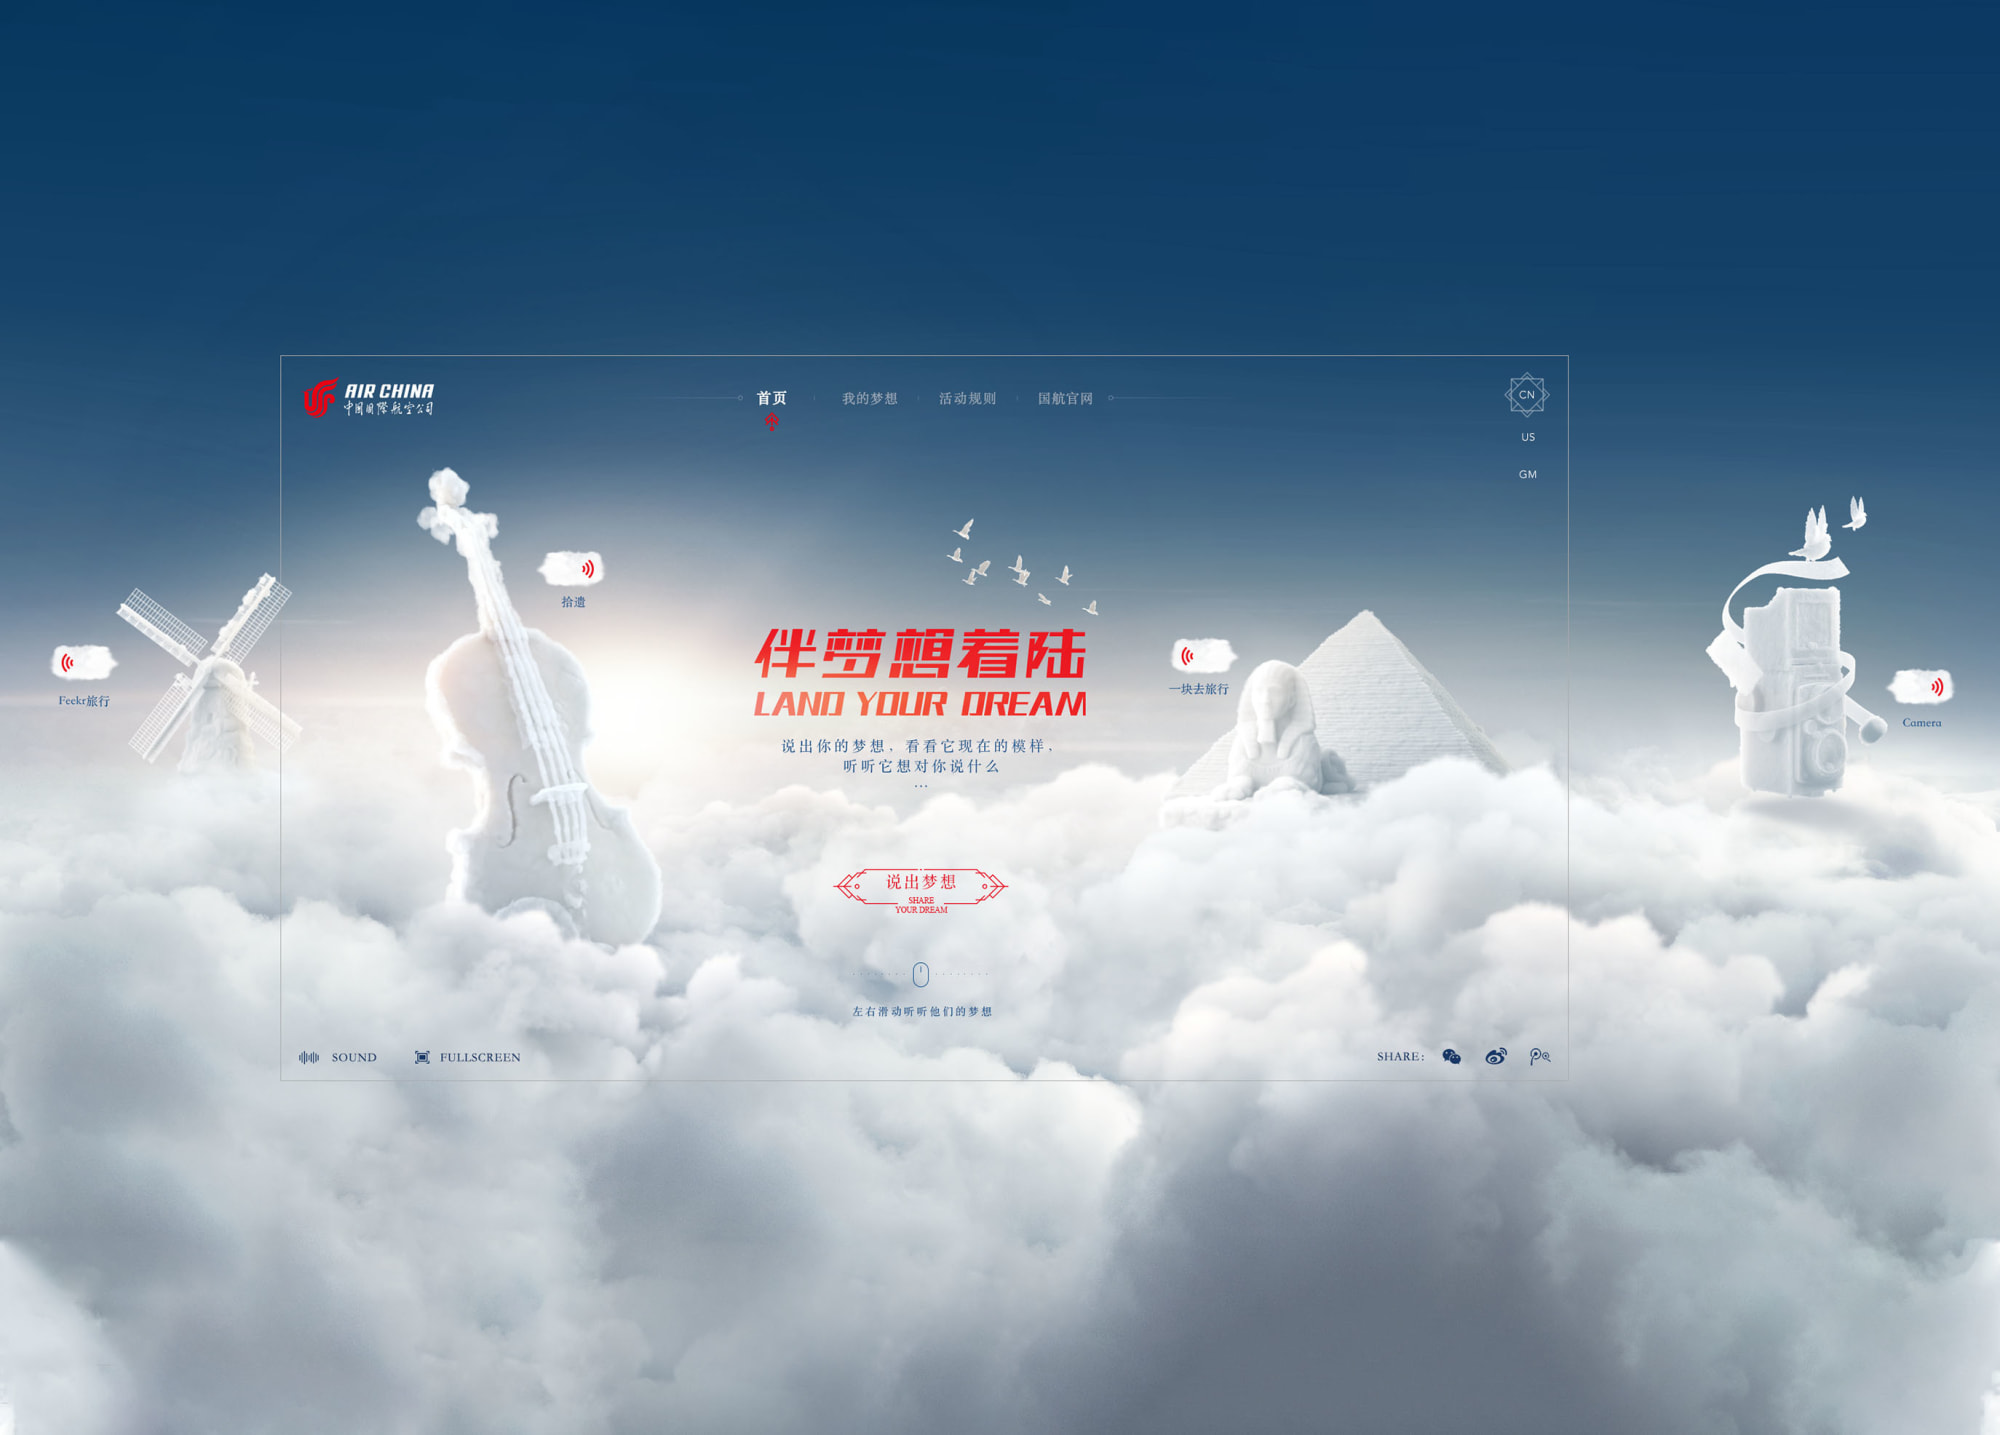 Beijing Office Air China Land Your Dream Campagin 2018 minisite index